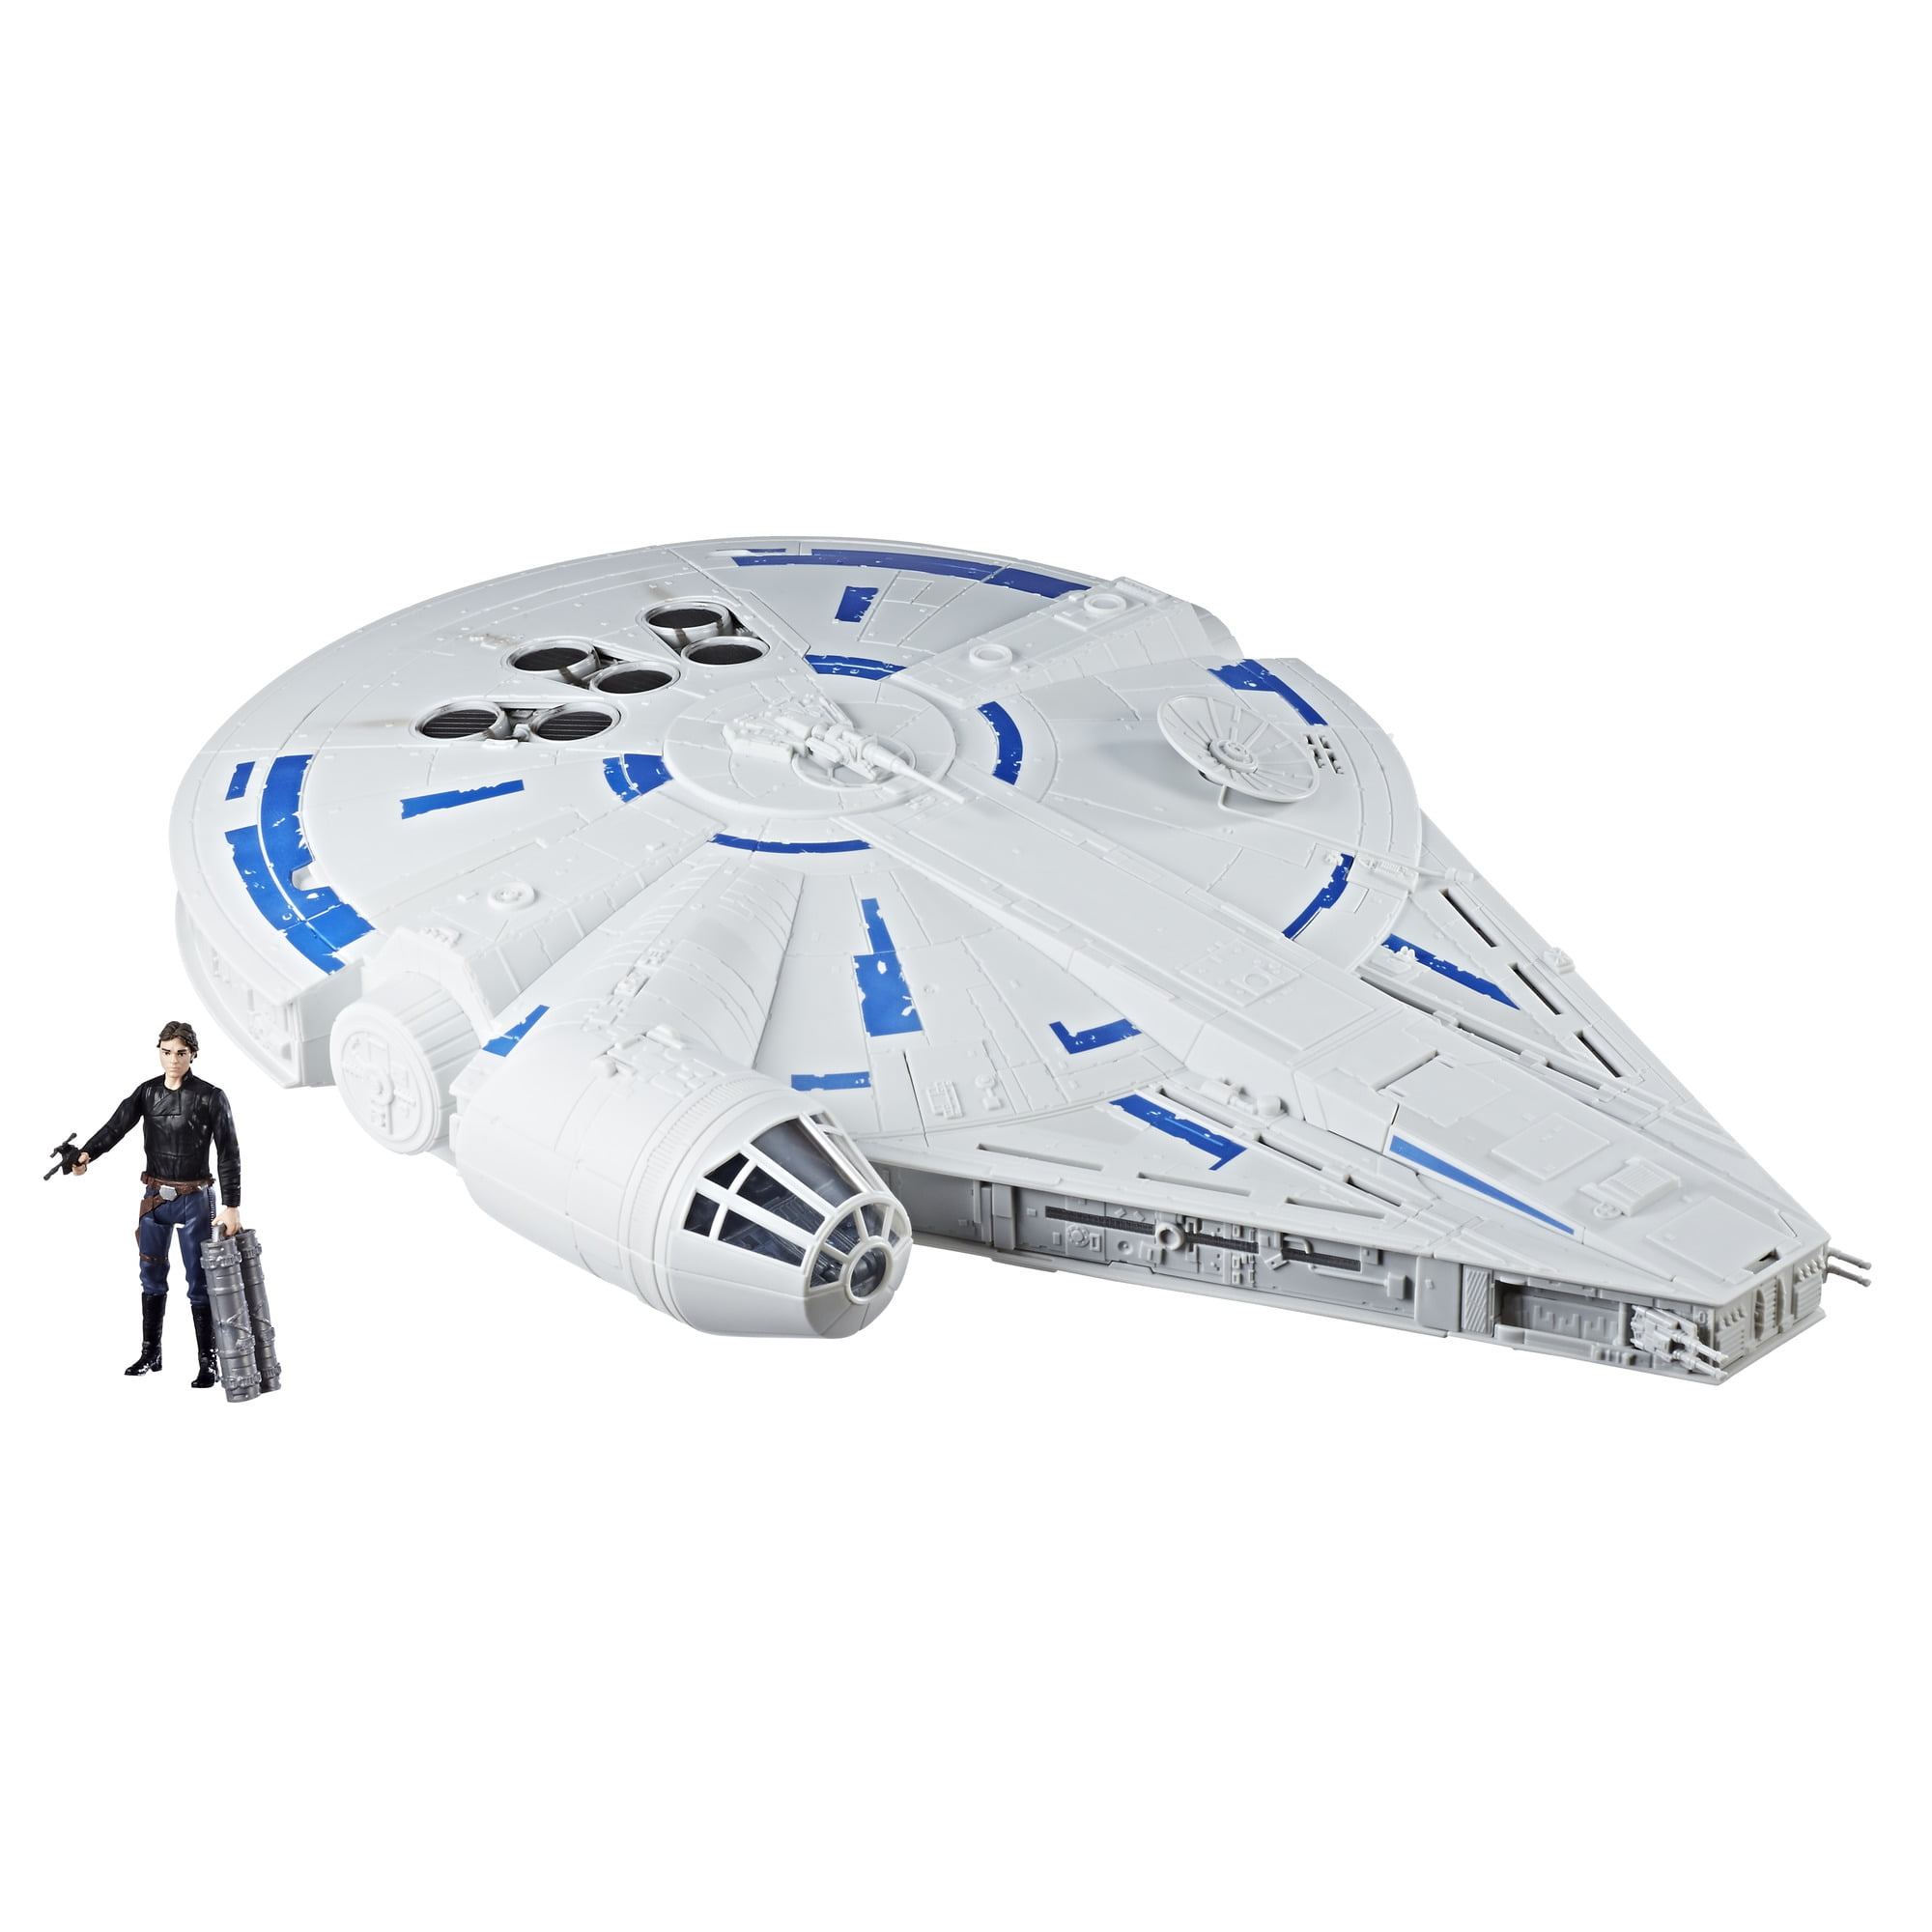 Star Wars Force Link 2.0 Kessel Run Millennium Falcon with Han Solo Figure by Hasbro